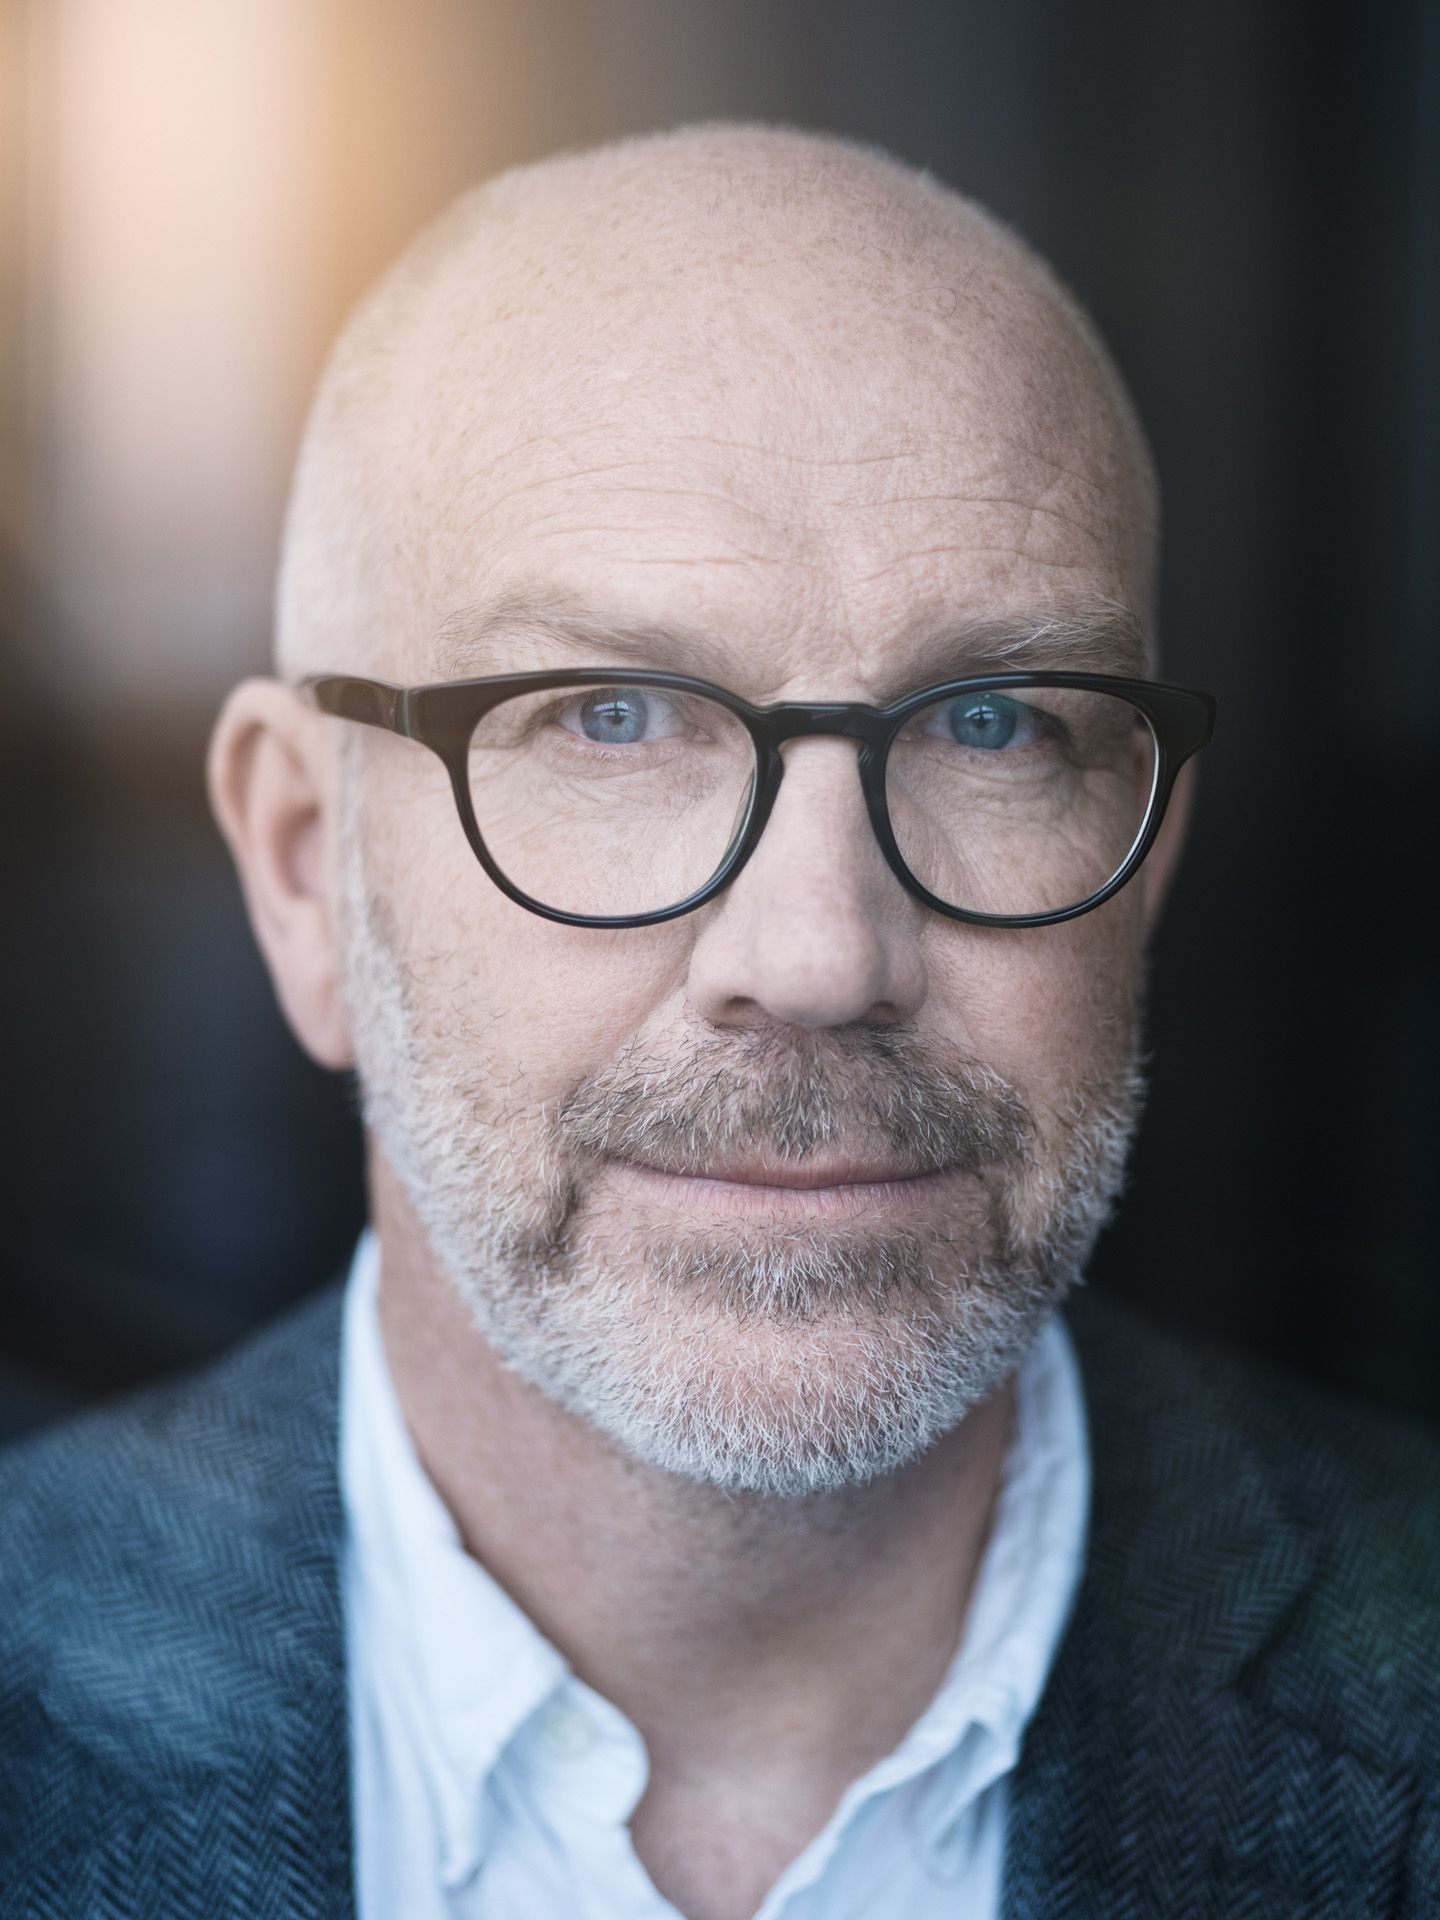 portrait of bald man with glasses by Alexi Hobbs for WSP